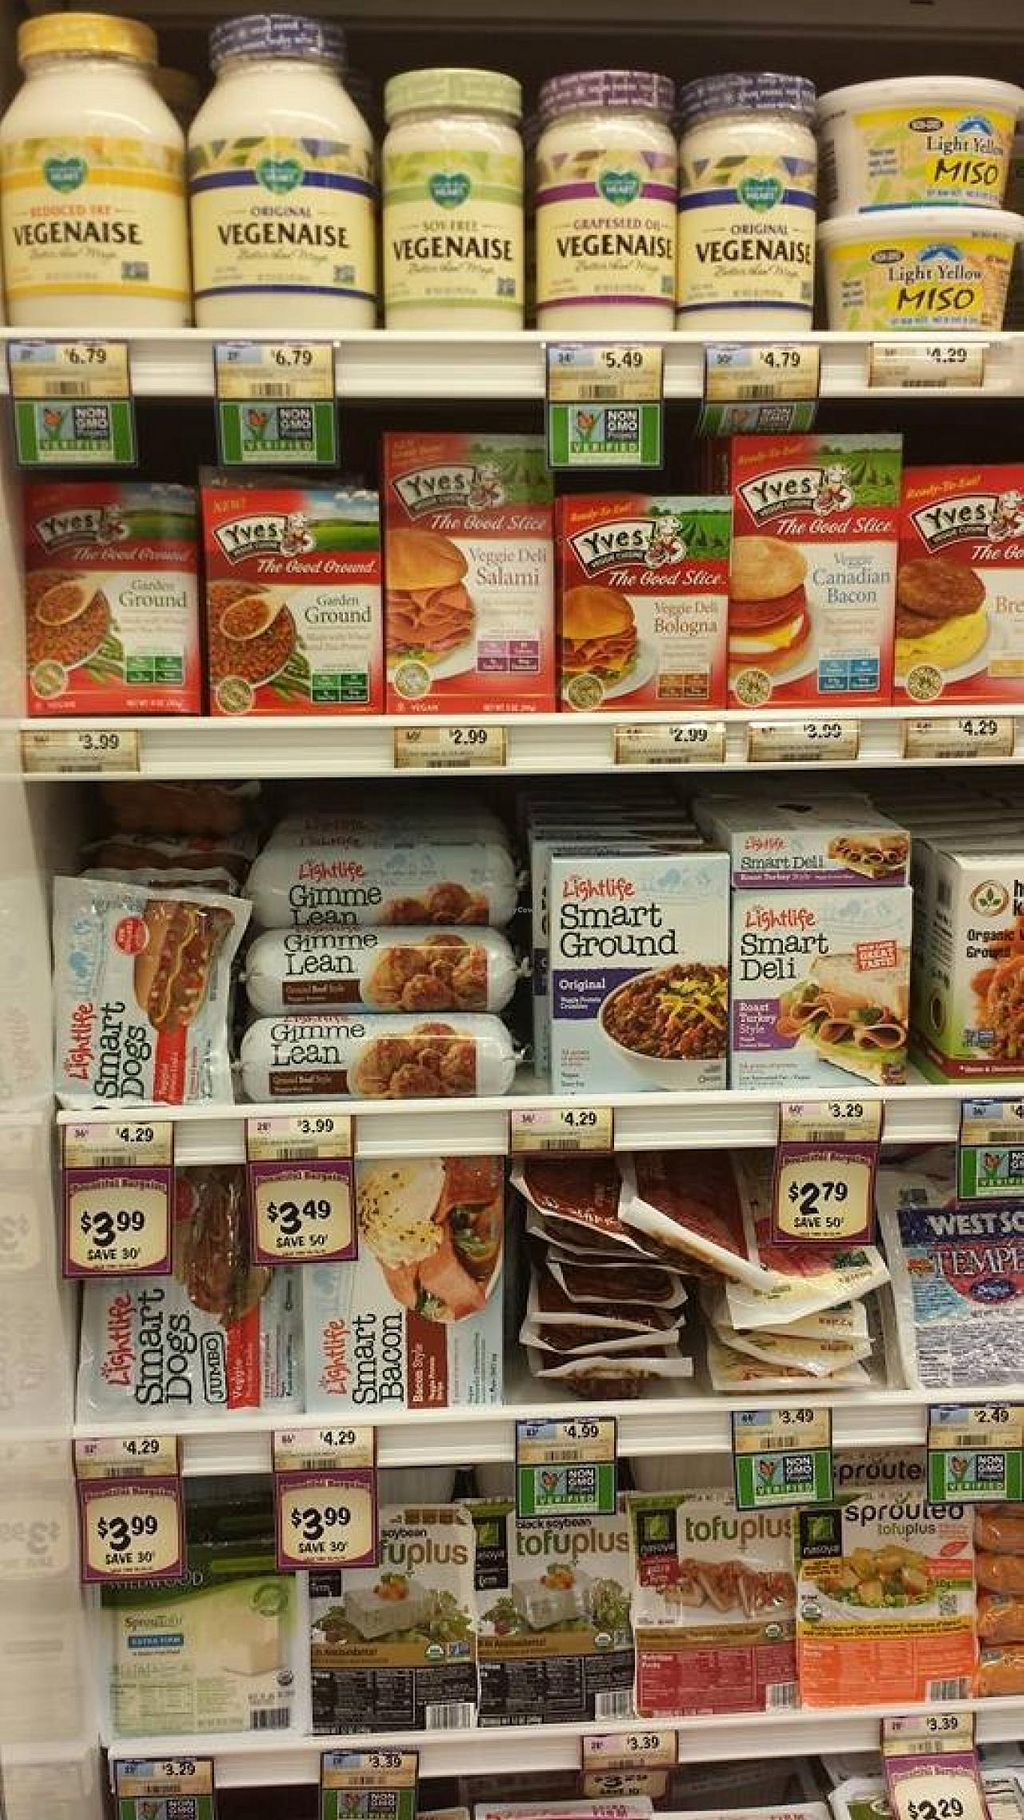 """Photo of Sprouts Farmers Market  by <a href=""""/members/profile/theveggietaste"""">theveggietaste</a> <br/>Great selections :-) <br/> July 30, 2014  - <a href='/contact/abuse/image/48722/75581'>Report</a>"""